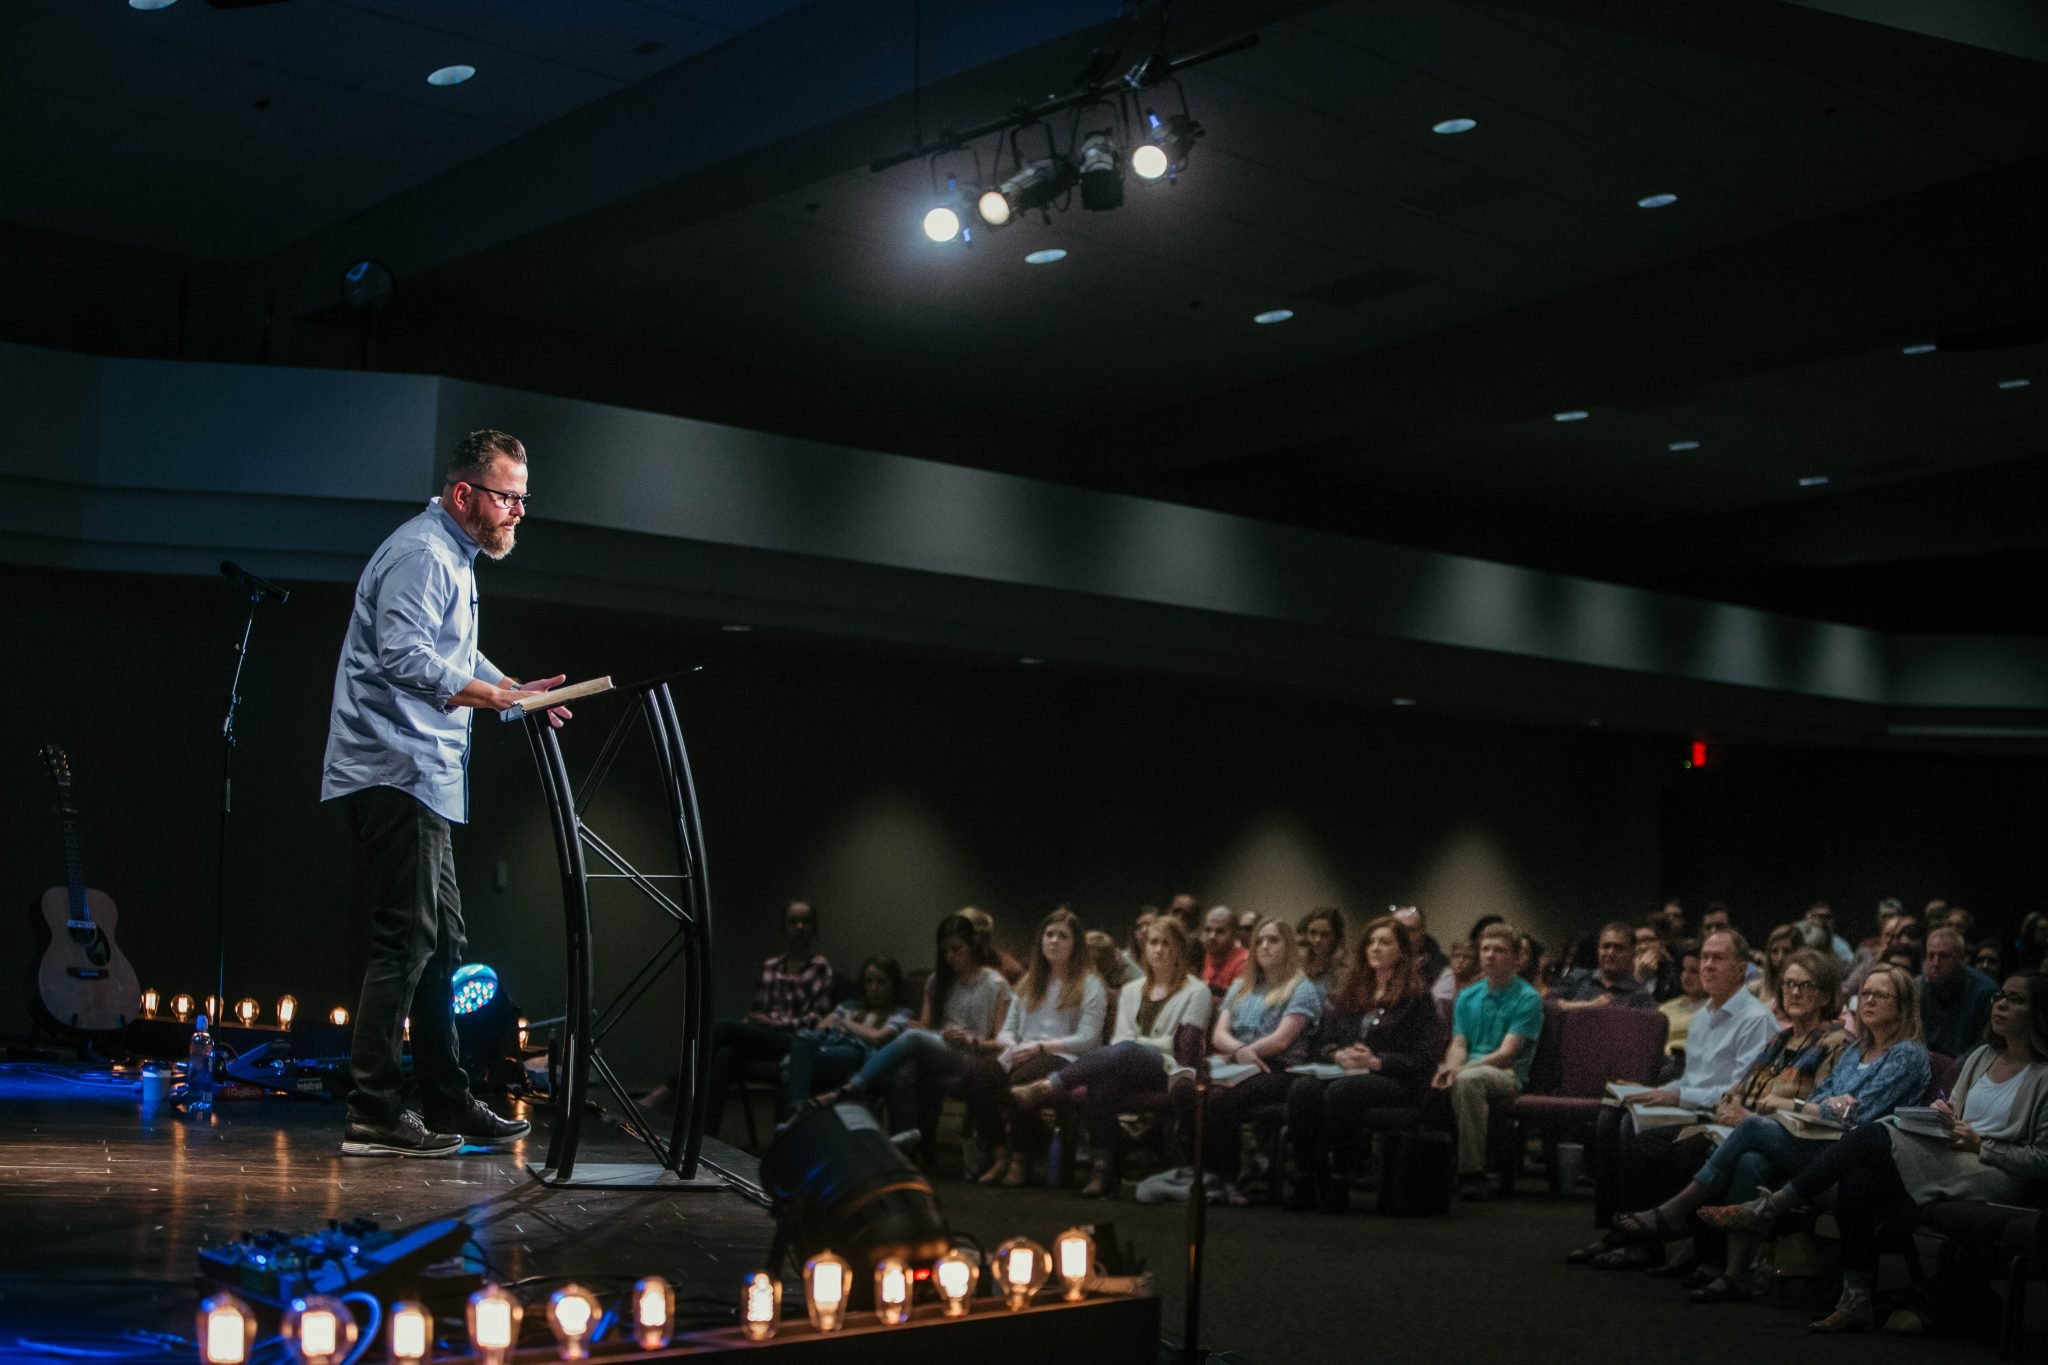 Senior Pastor Jason Craft preaches at Messiah's House in Amarillo, Texas